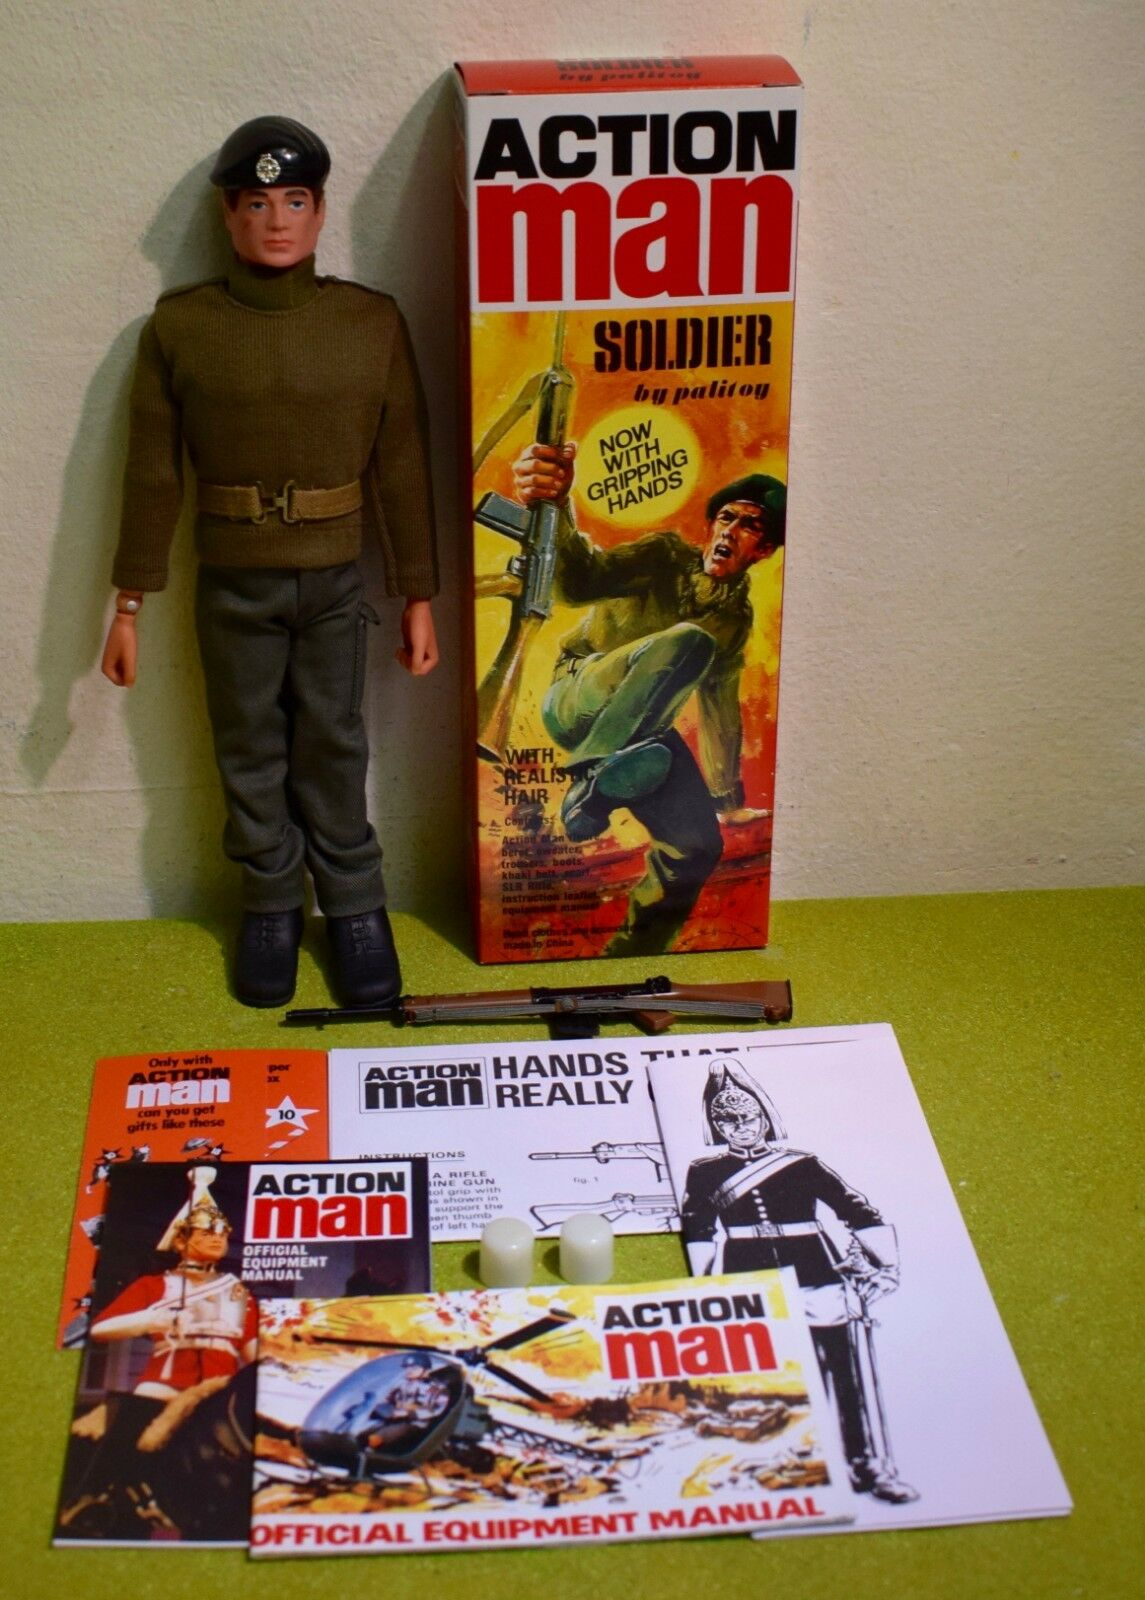 ACTION MAN 40th BOXED SOLDIER braun FLOCKED HAIR GRIPPING HANDS